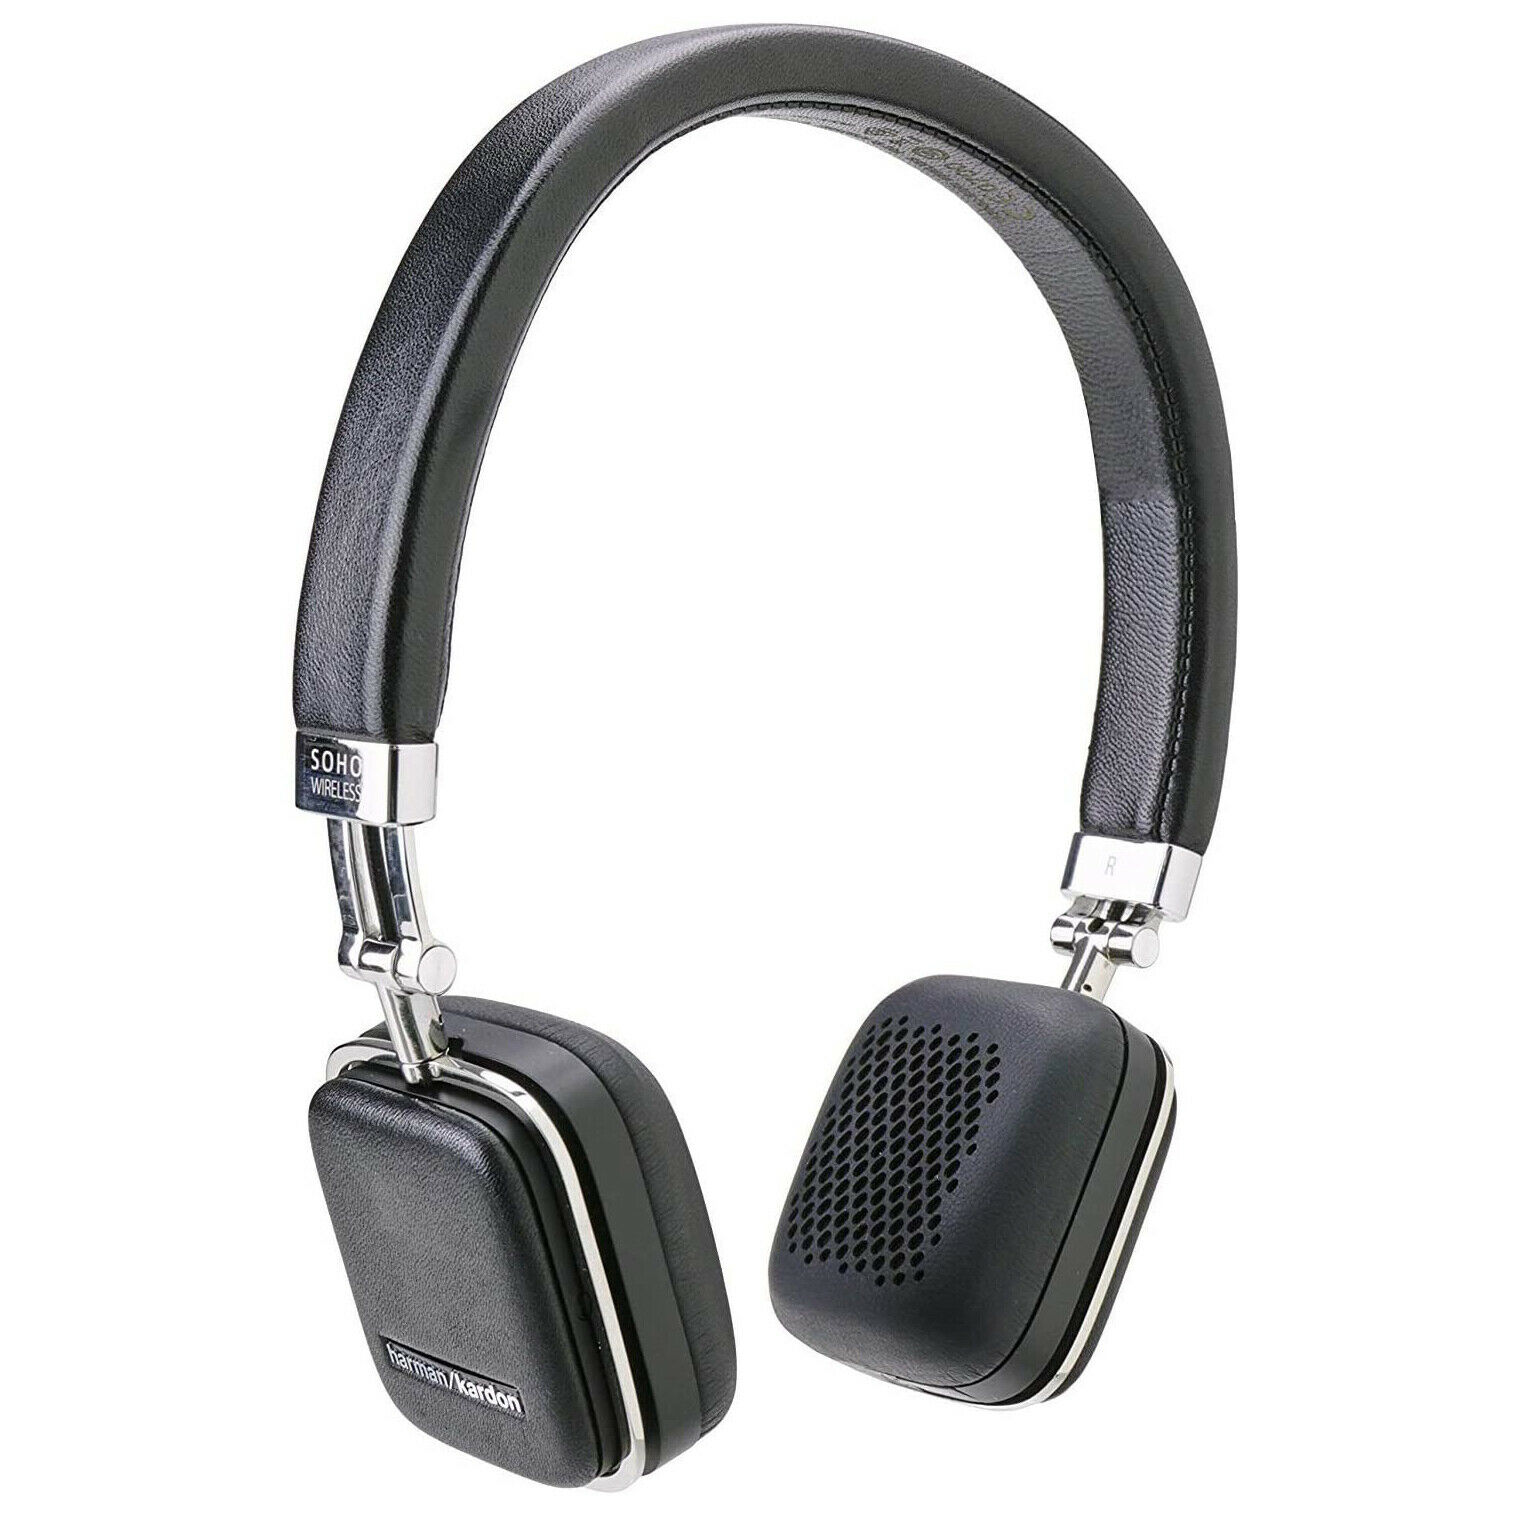 Harman Kardon Soho On The Ear Bluetooth Headphones Black For Sale Online Ebay